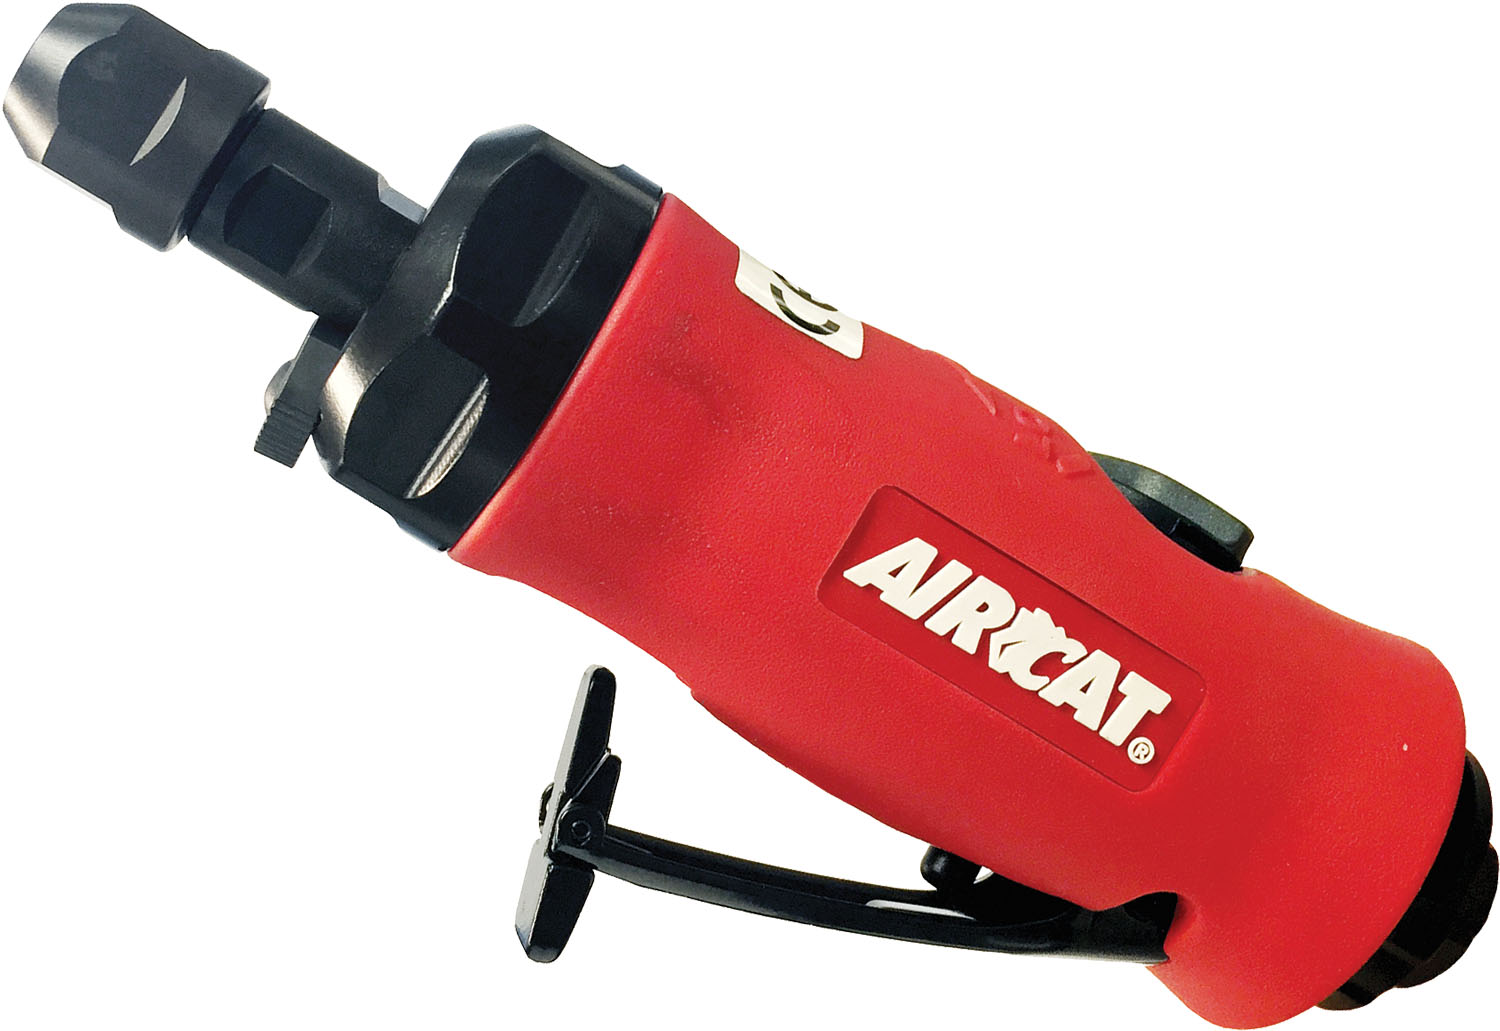 AIRCAT .75 HP Die Grinder with Spindle Lock